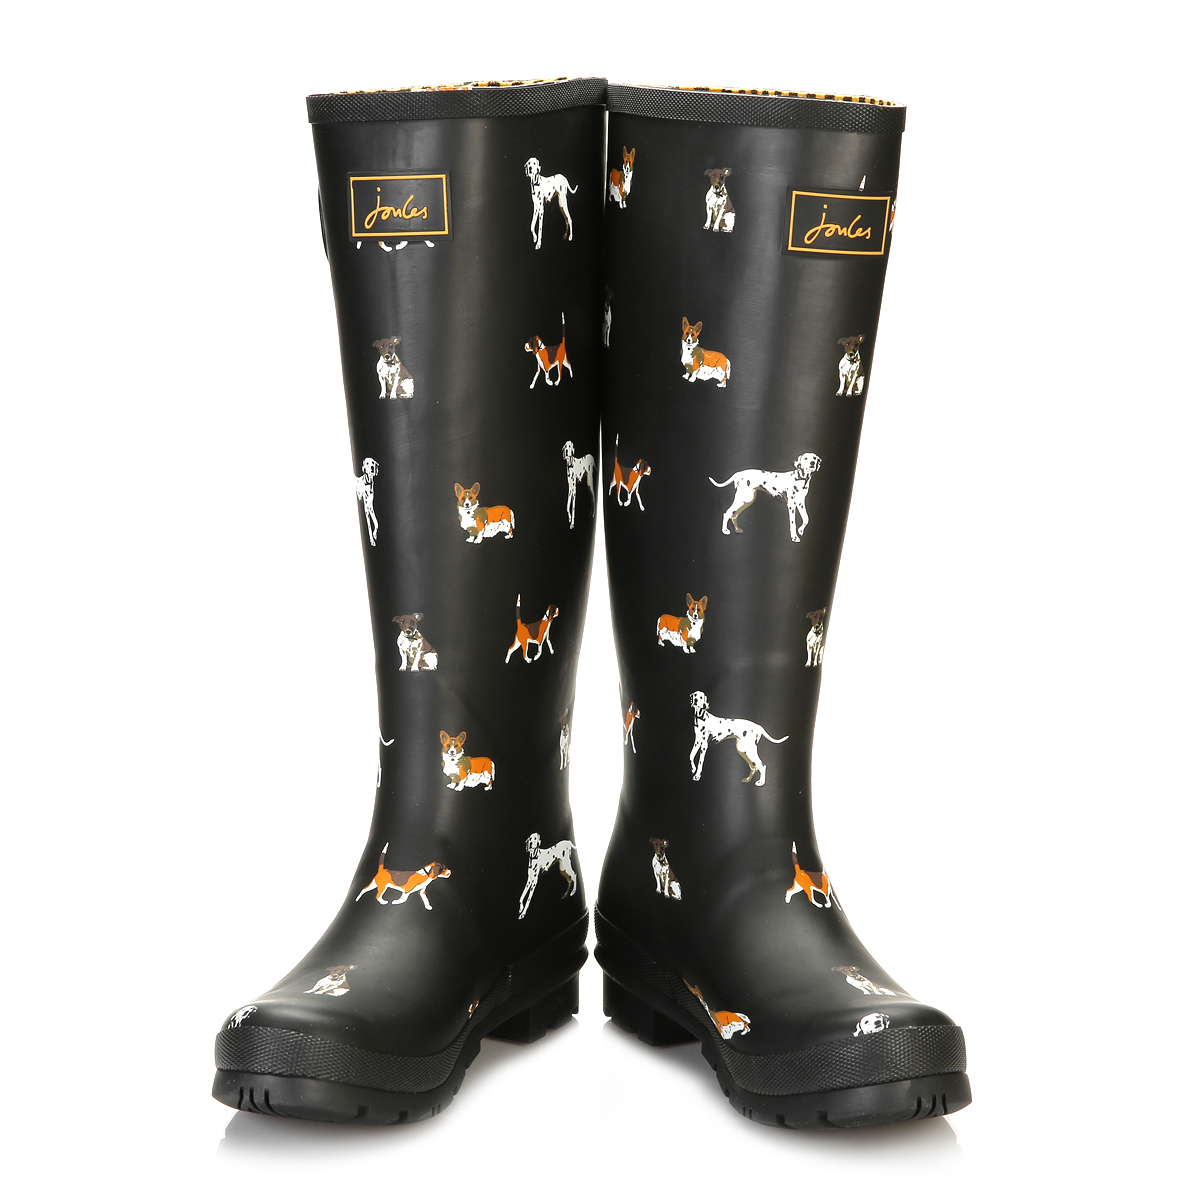 Welly Shoes Uk